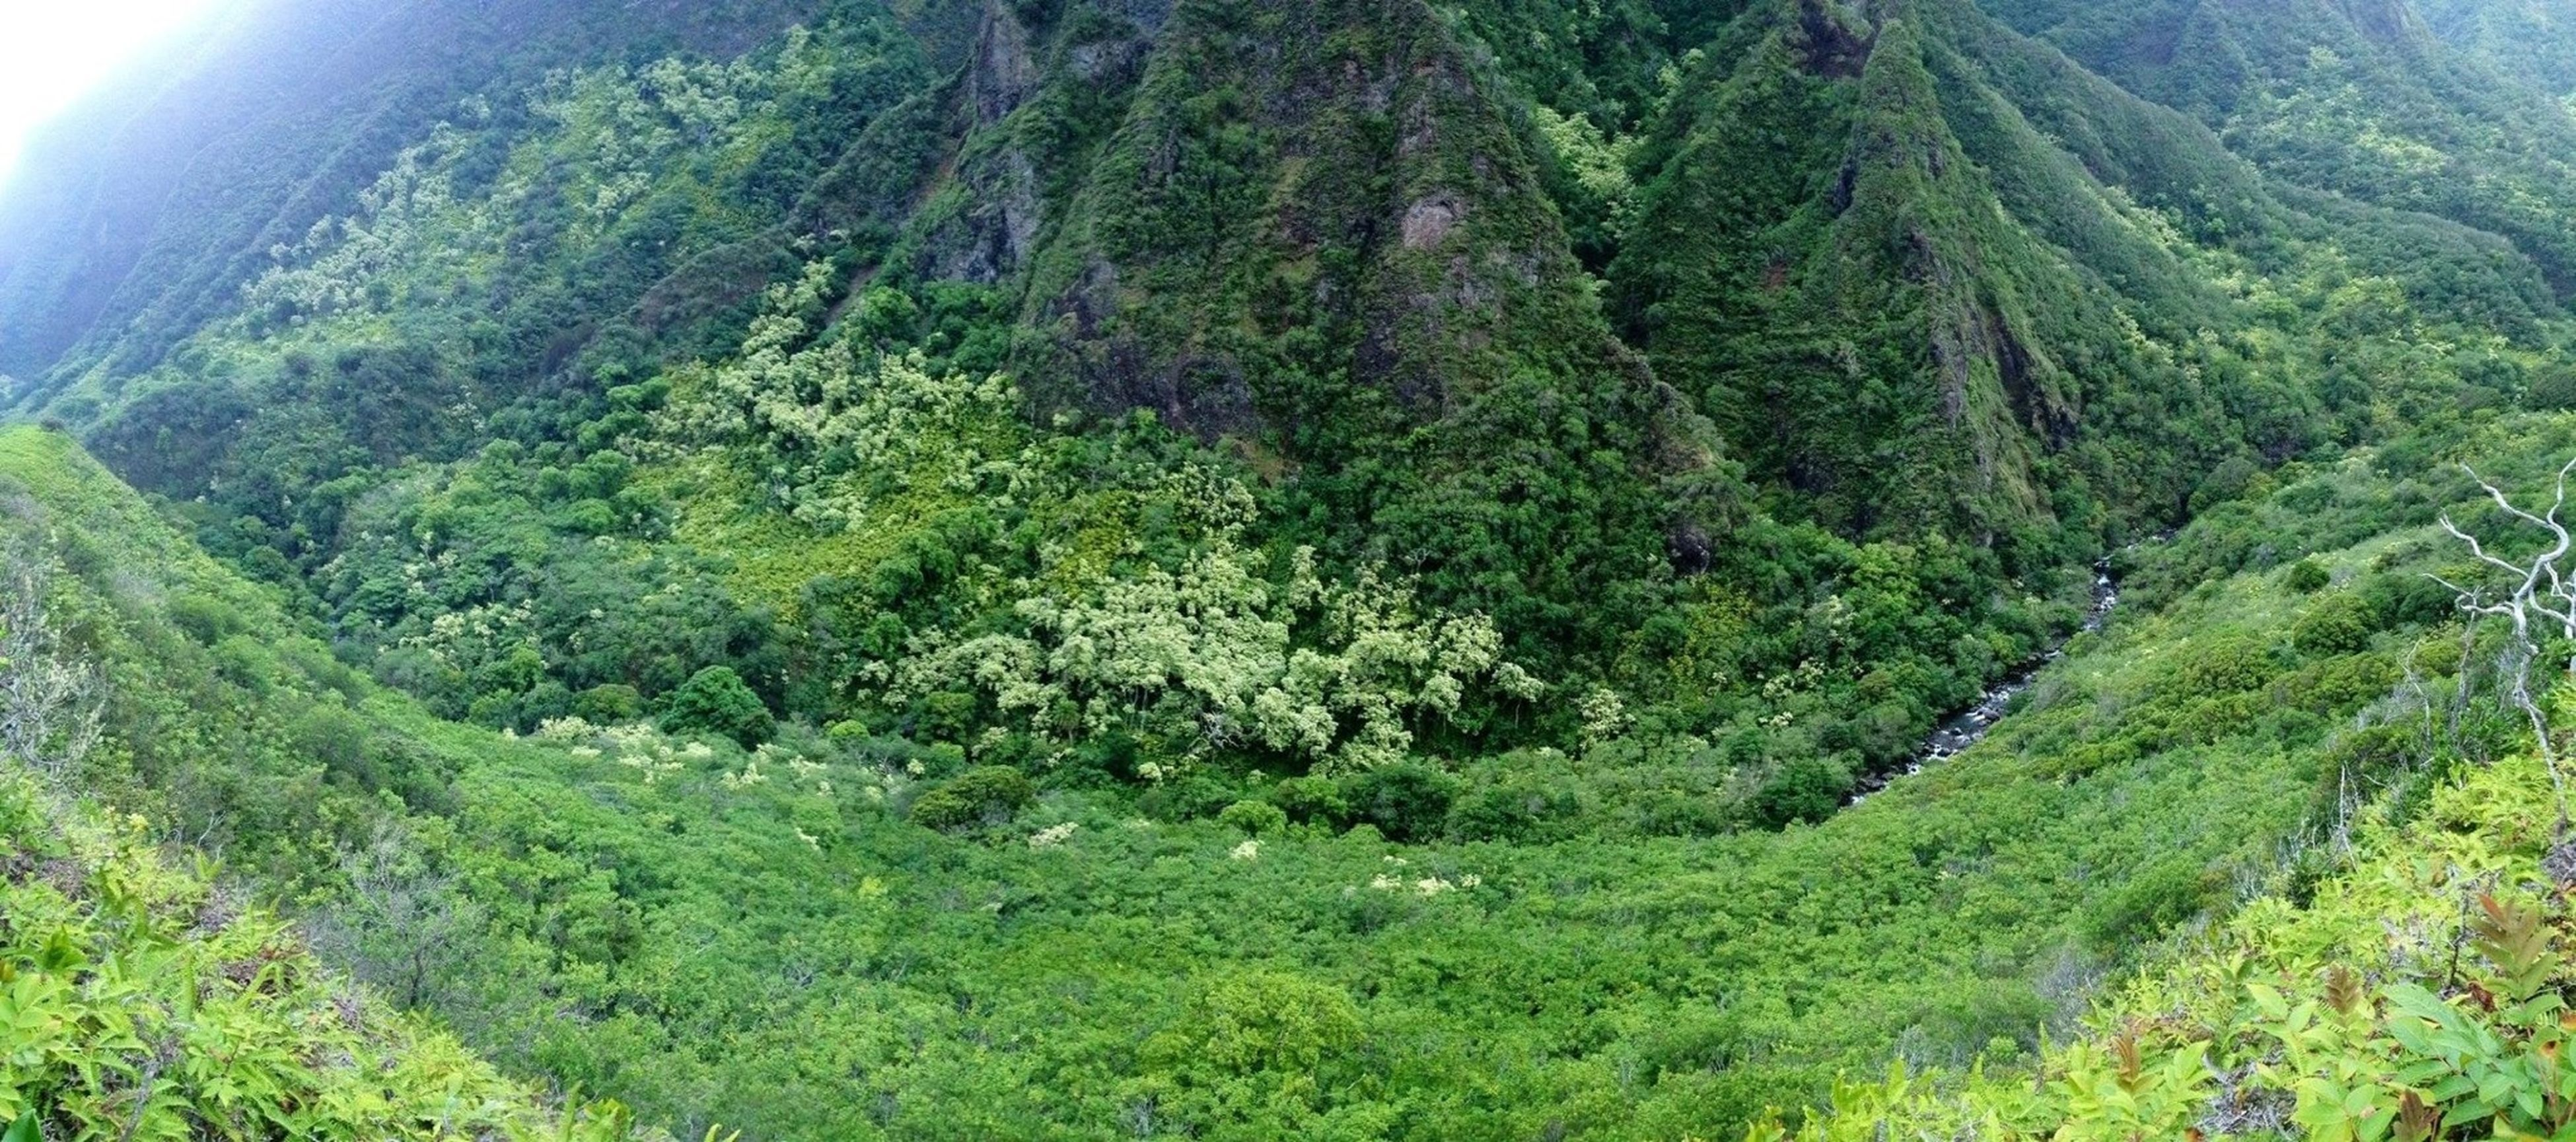 mountain, tranquil scene, tranquility, green color, scenics, landscape, beauty in nature, nature, tree, growth, non-urban scene, lush foliage, mountain range, high angle view, grass, idyllic, valley, green, plant, remote